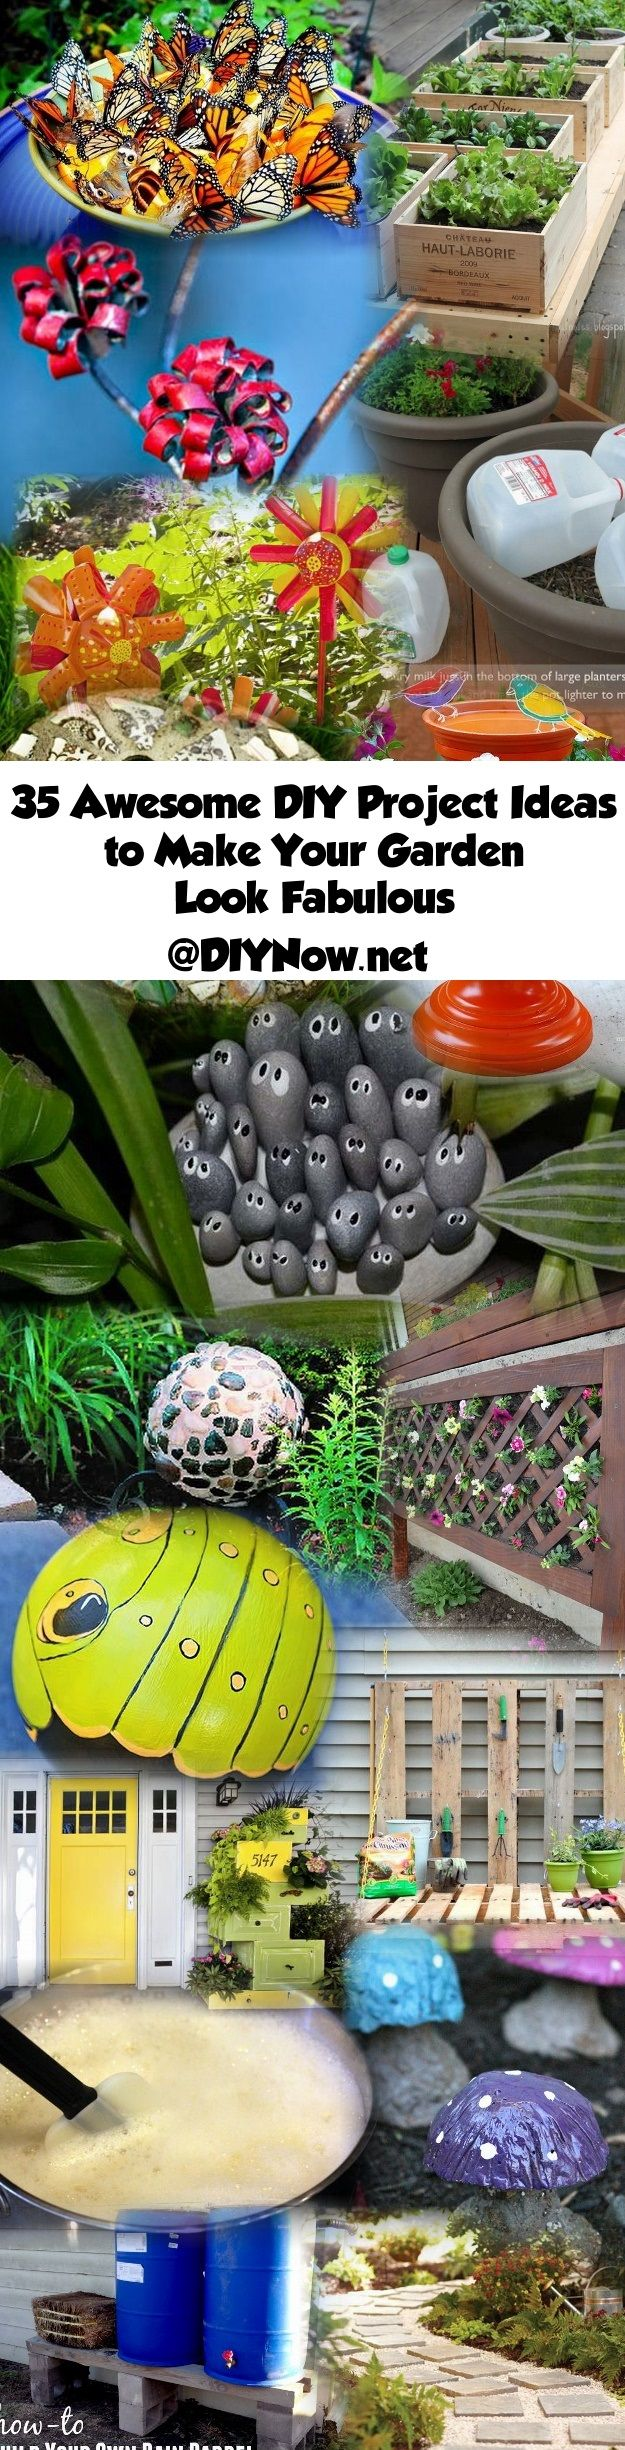 35 Awesome DIY Project Ideas to Make Your Garden Look Fabulous